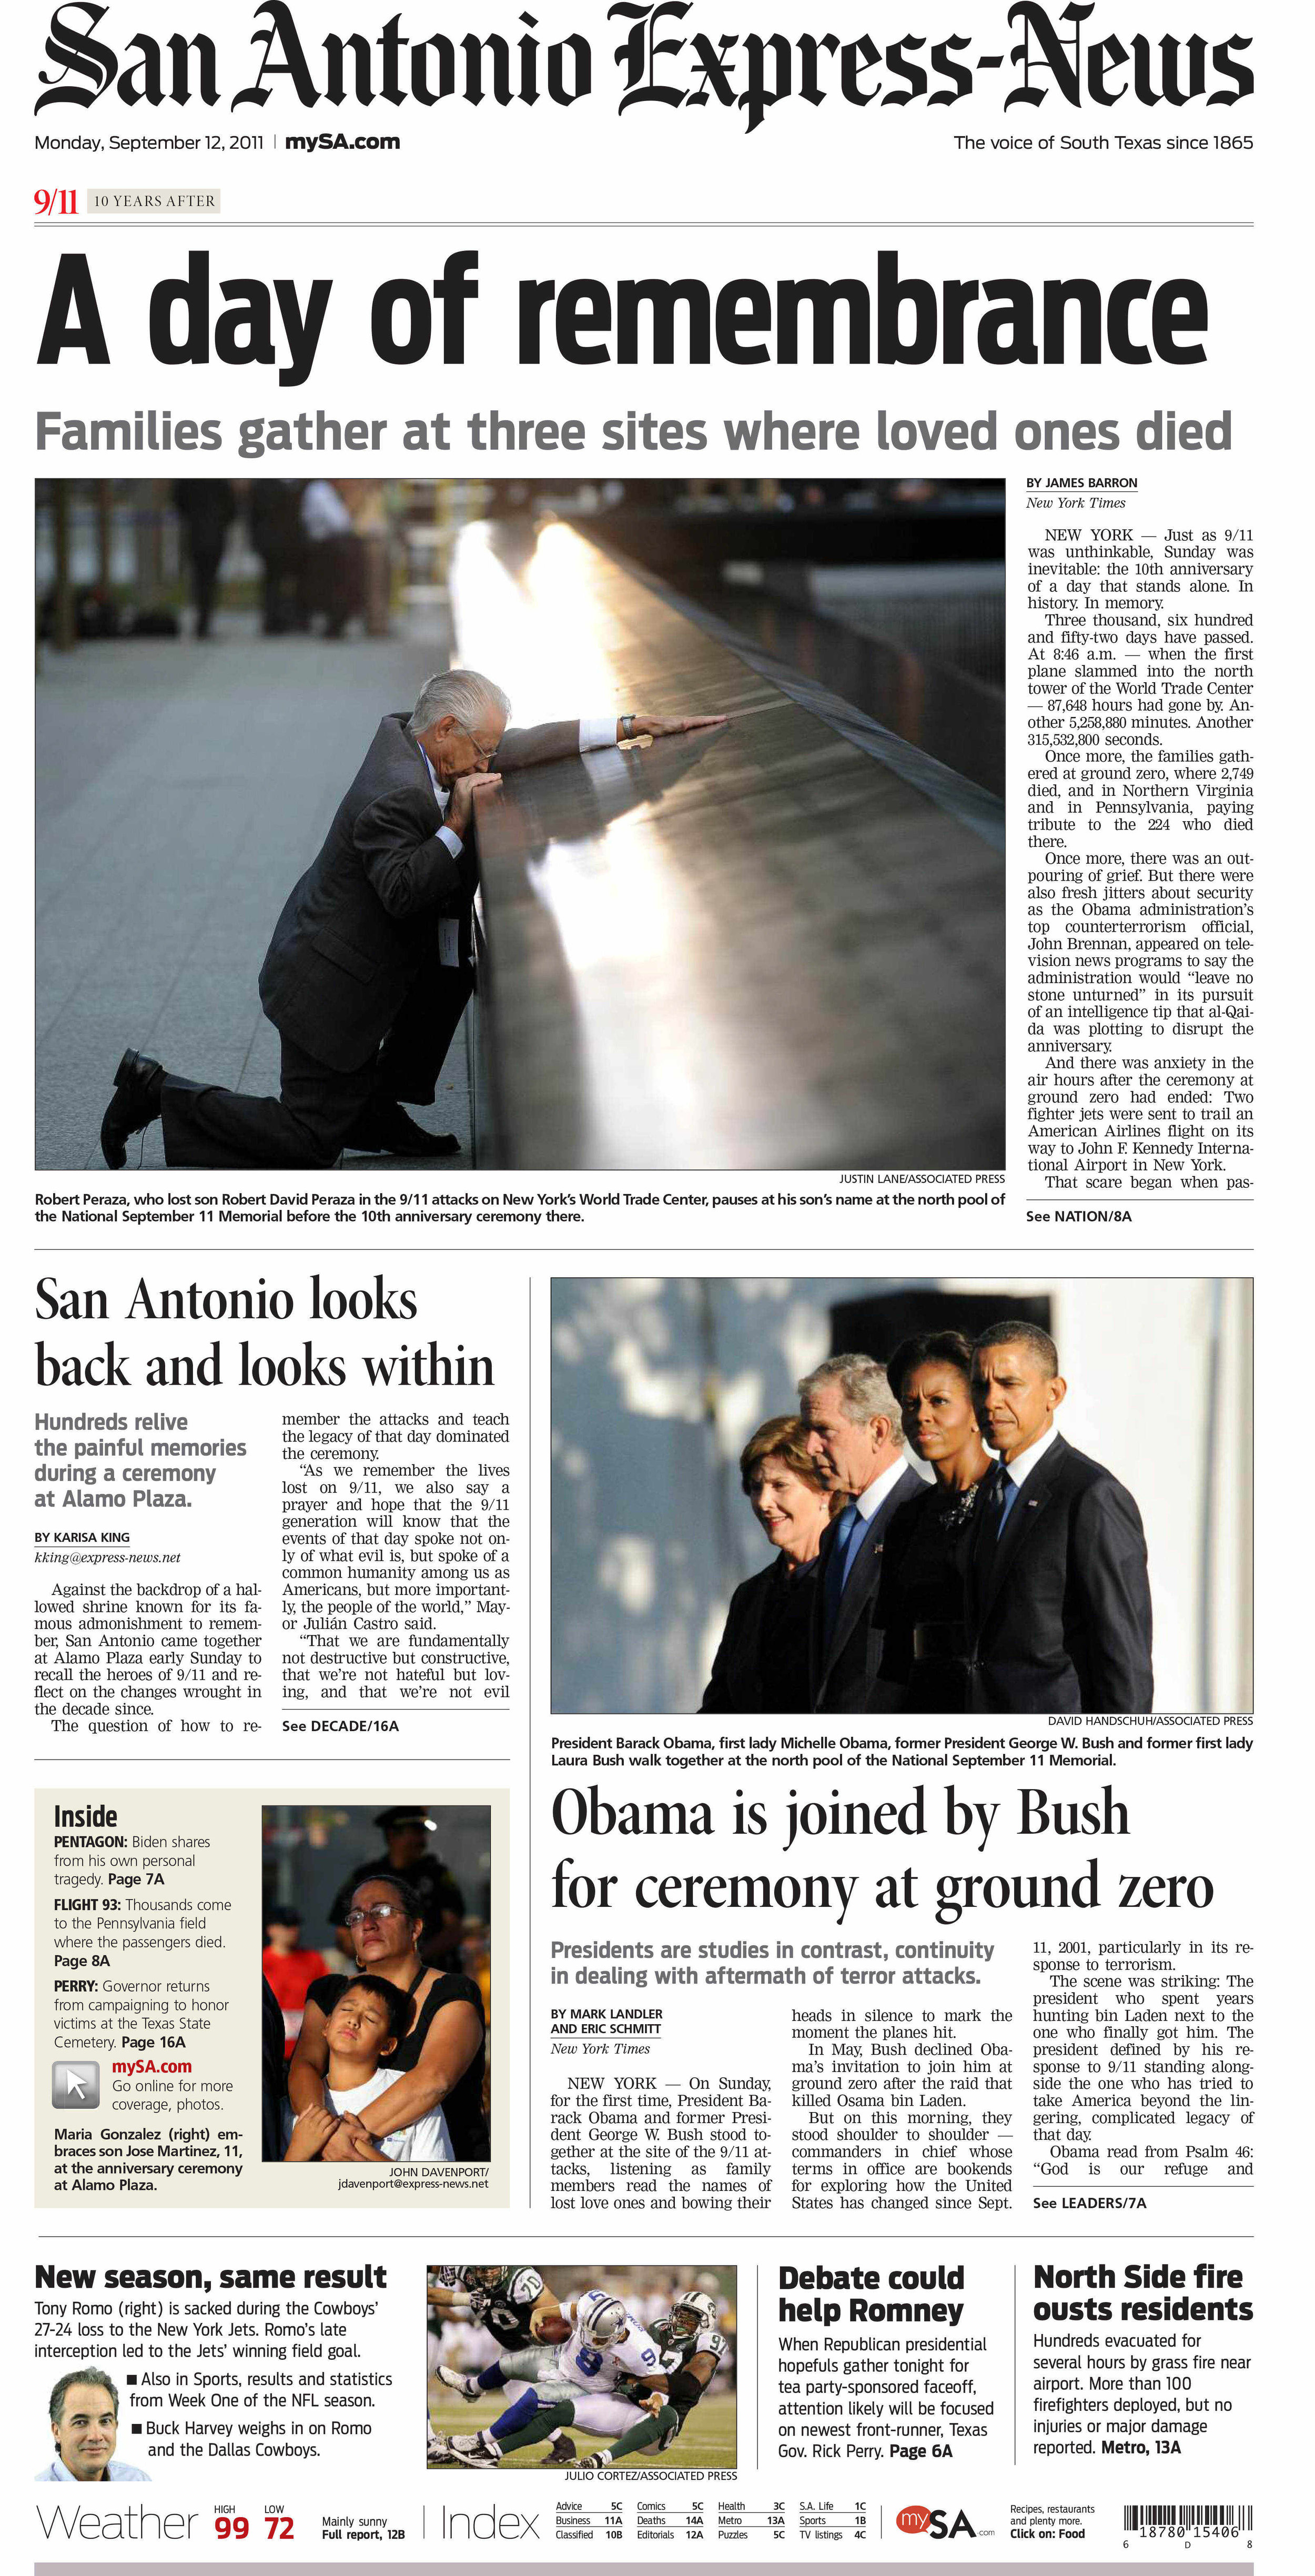 San Antonio Express-News.